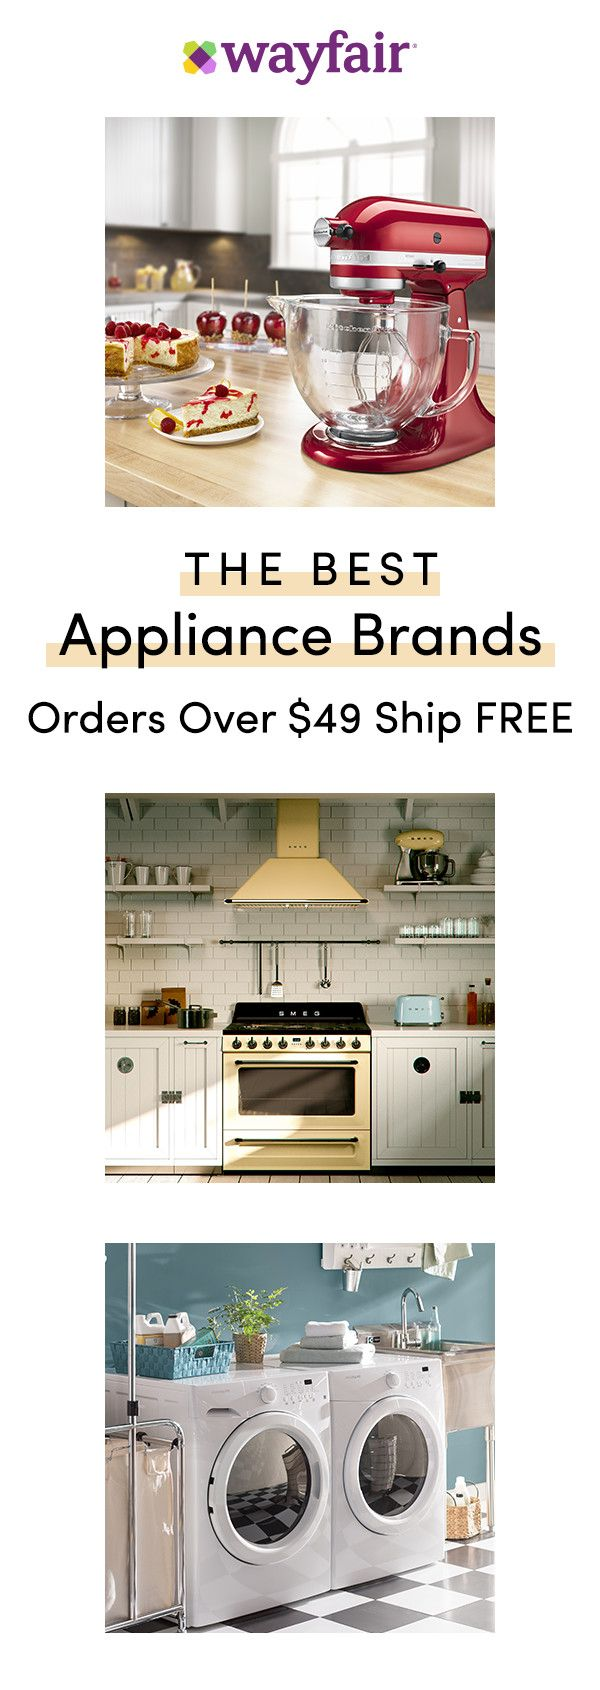 Sign Up For Access To Exclusive Sales All At Up To 70 Off Upgrading Your Appliances Has Never Been So Eas Cooking Appliances Home Appliances Best Appliances